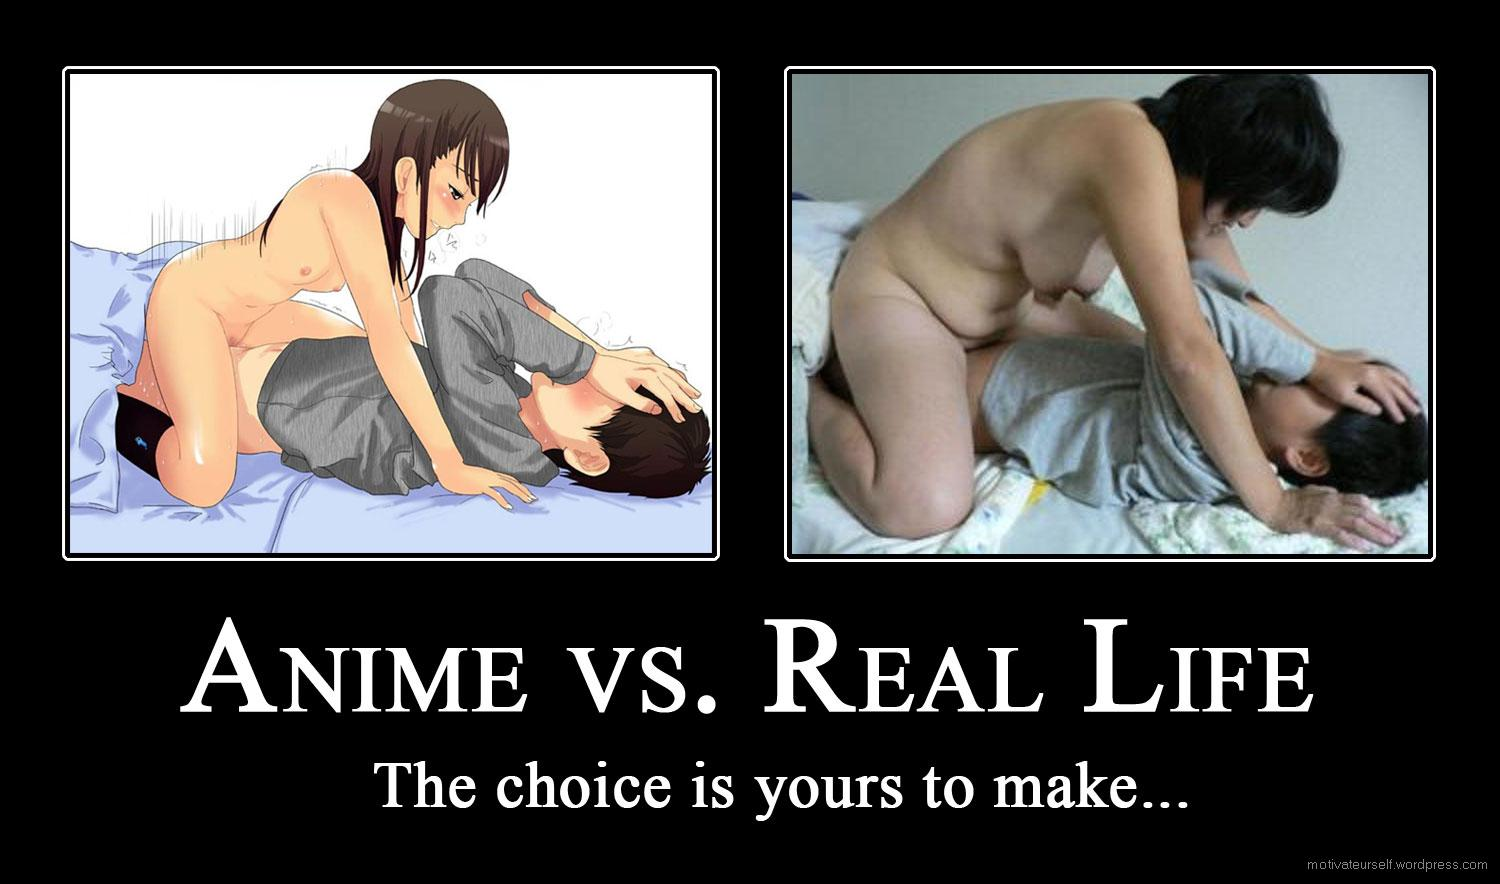 Hentai vs real porn sexual galleries